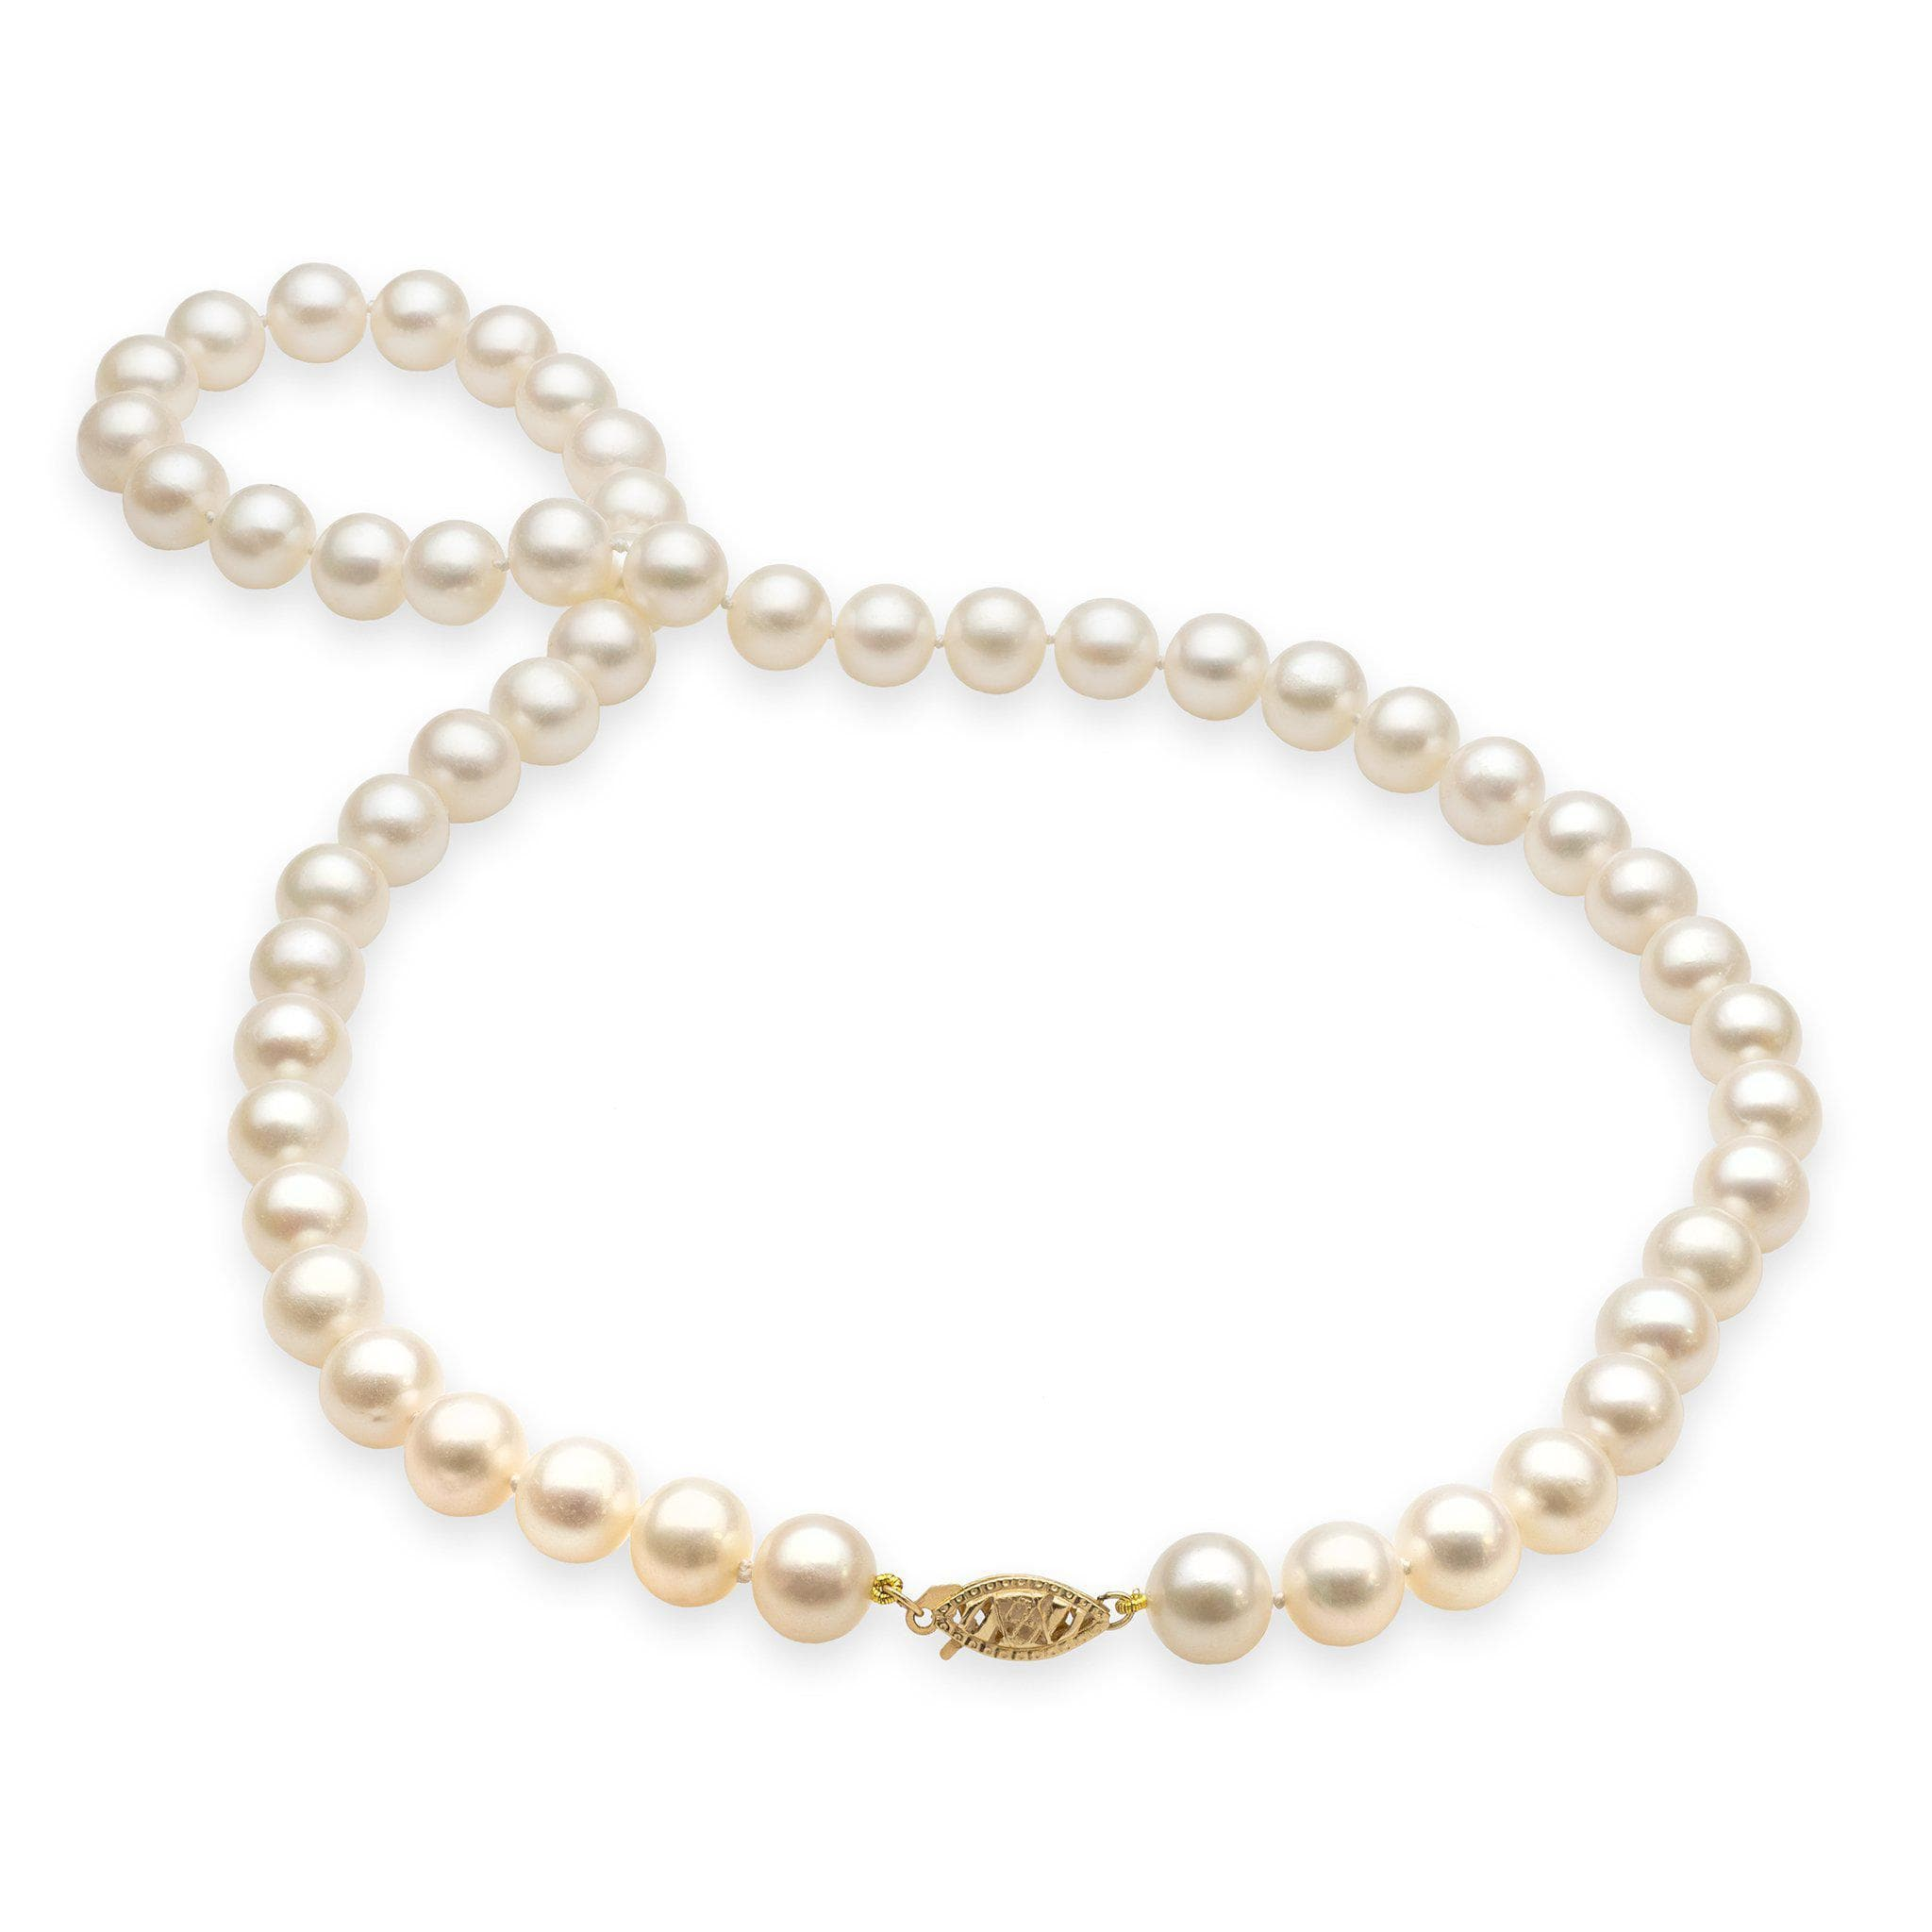 graduated jewellery necklace pearl yoko gem pearls quality london